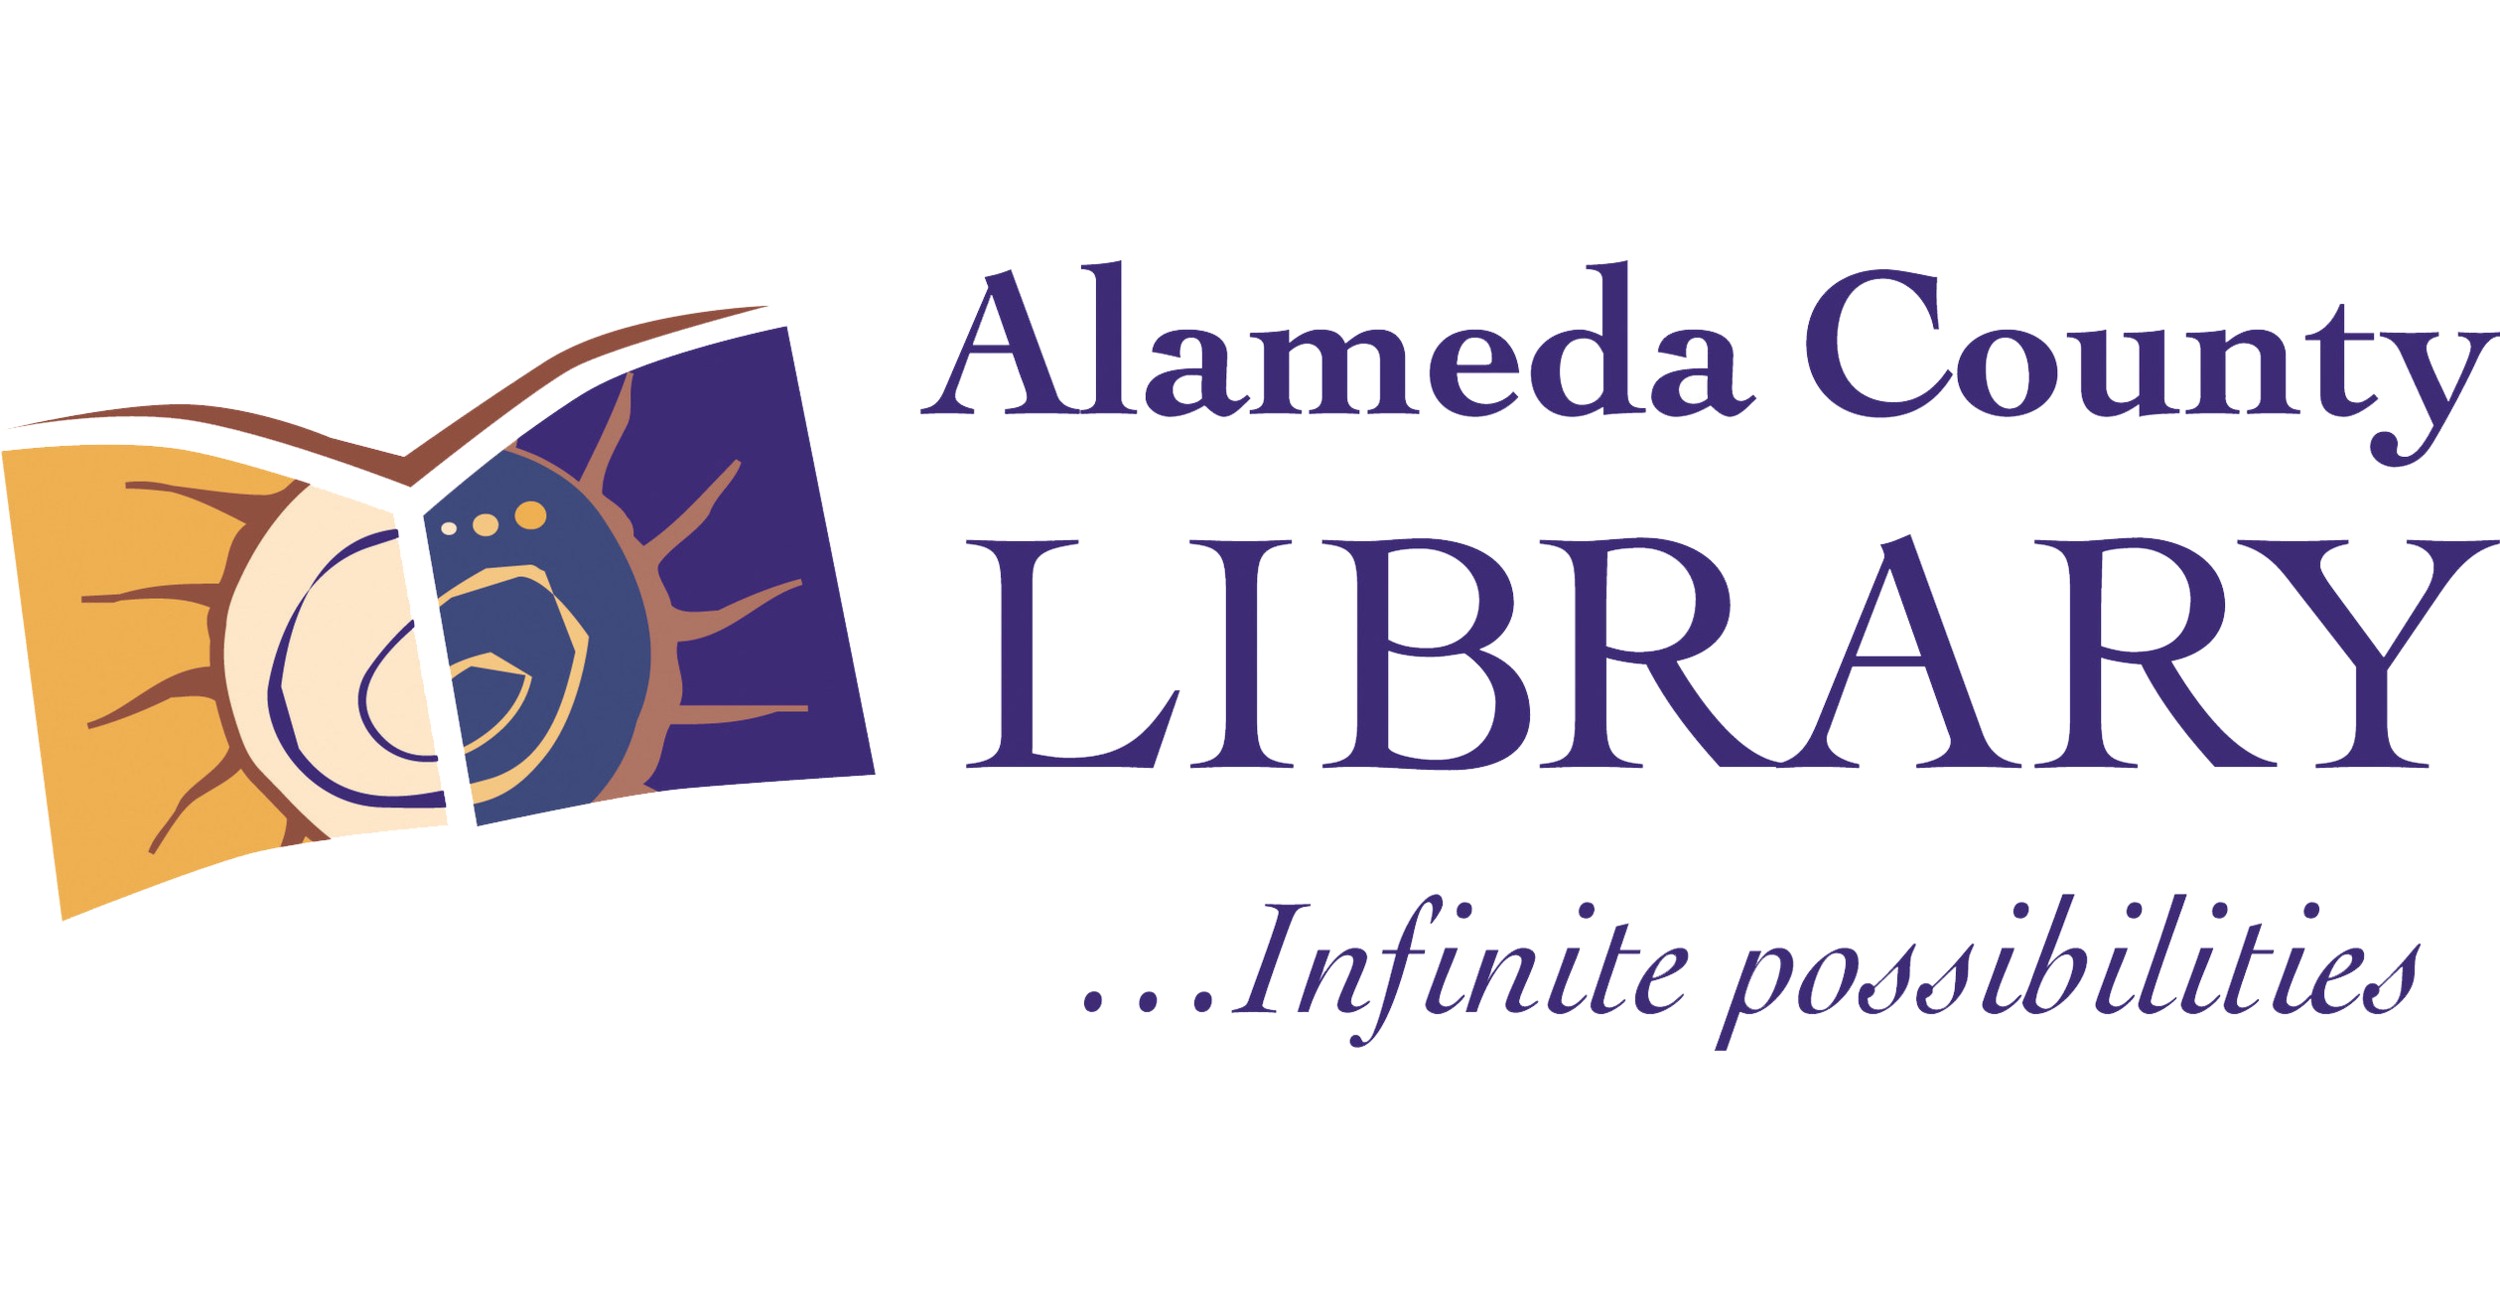 Alameda_County_Library_Logo.png